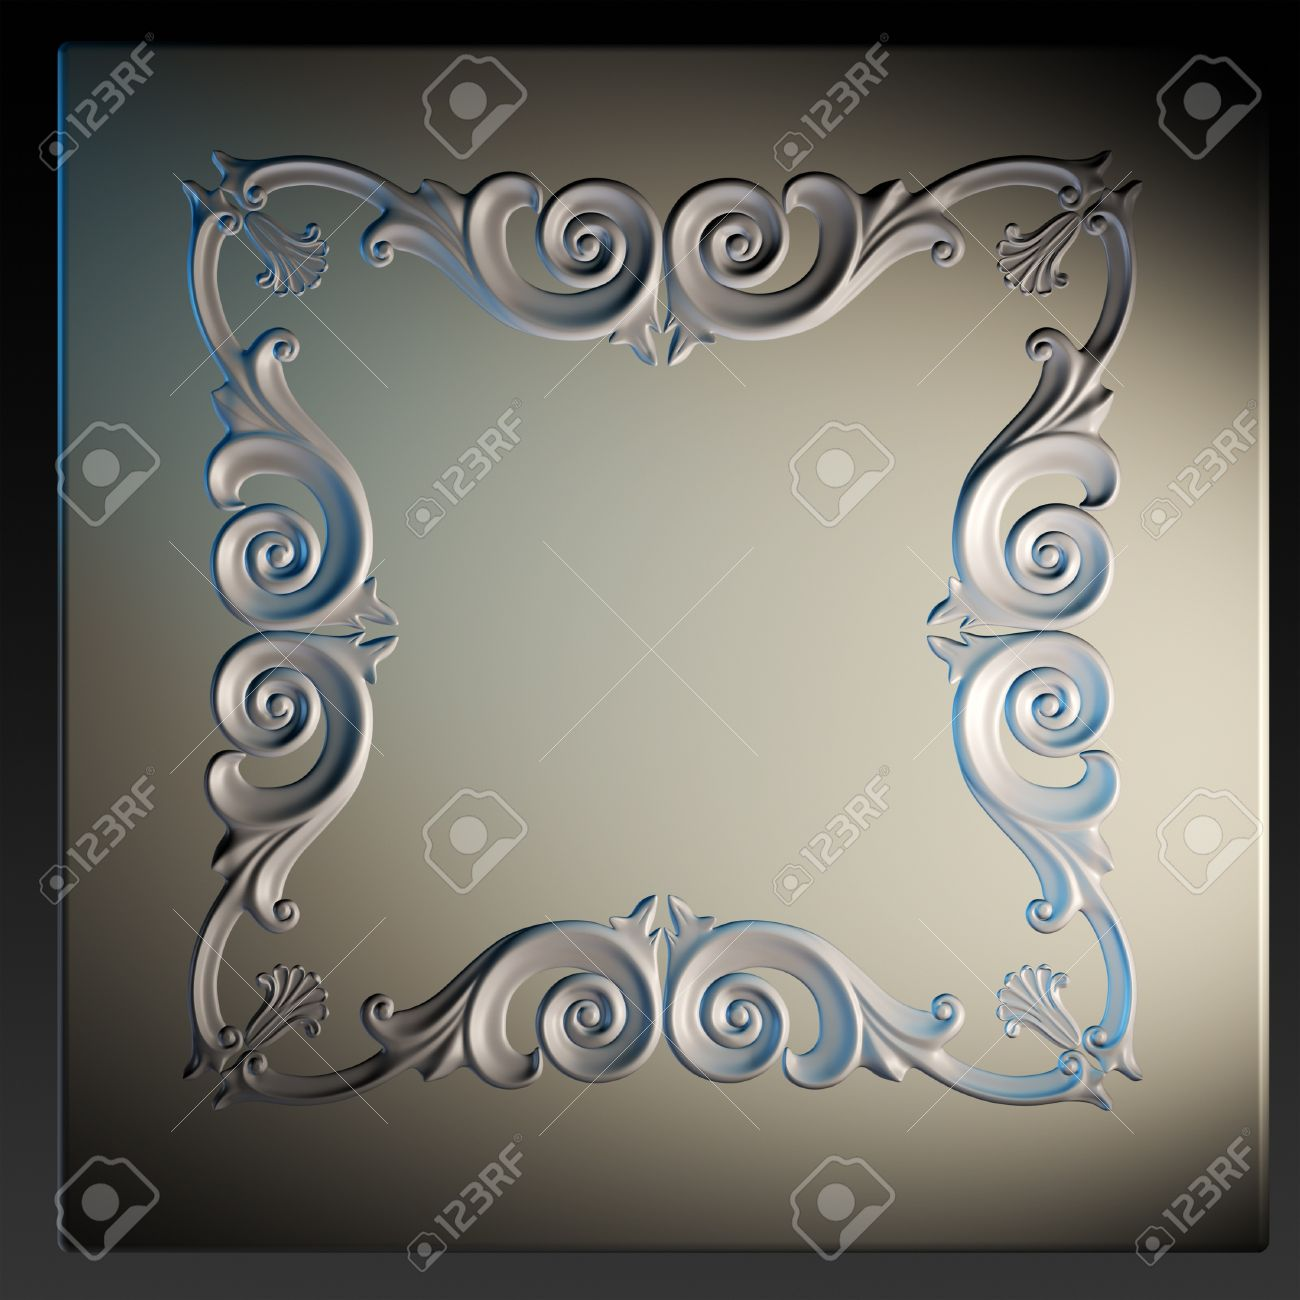 3d Frame The Sculptural Form On A Dark Background Stock Photo 1300x1300